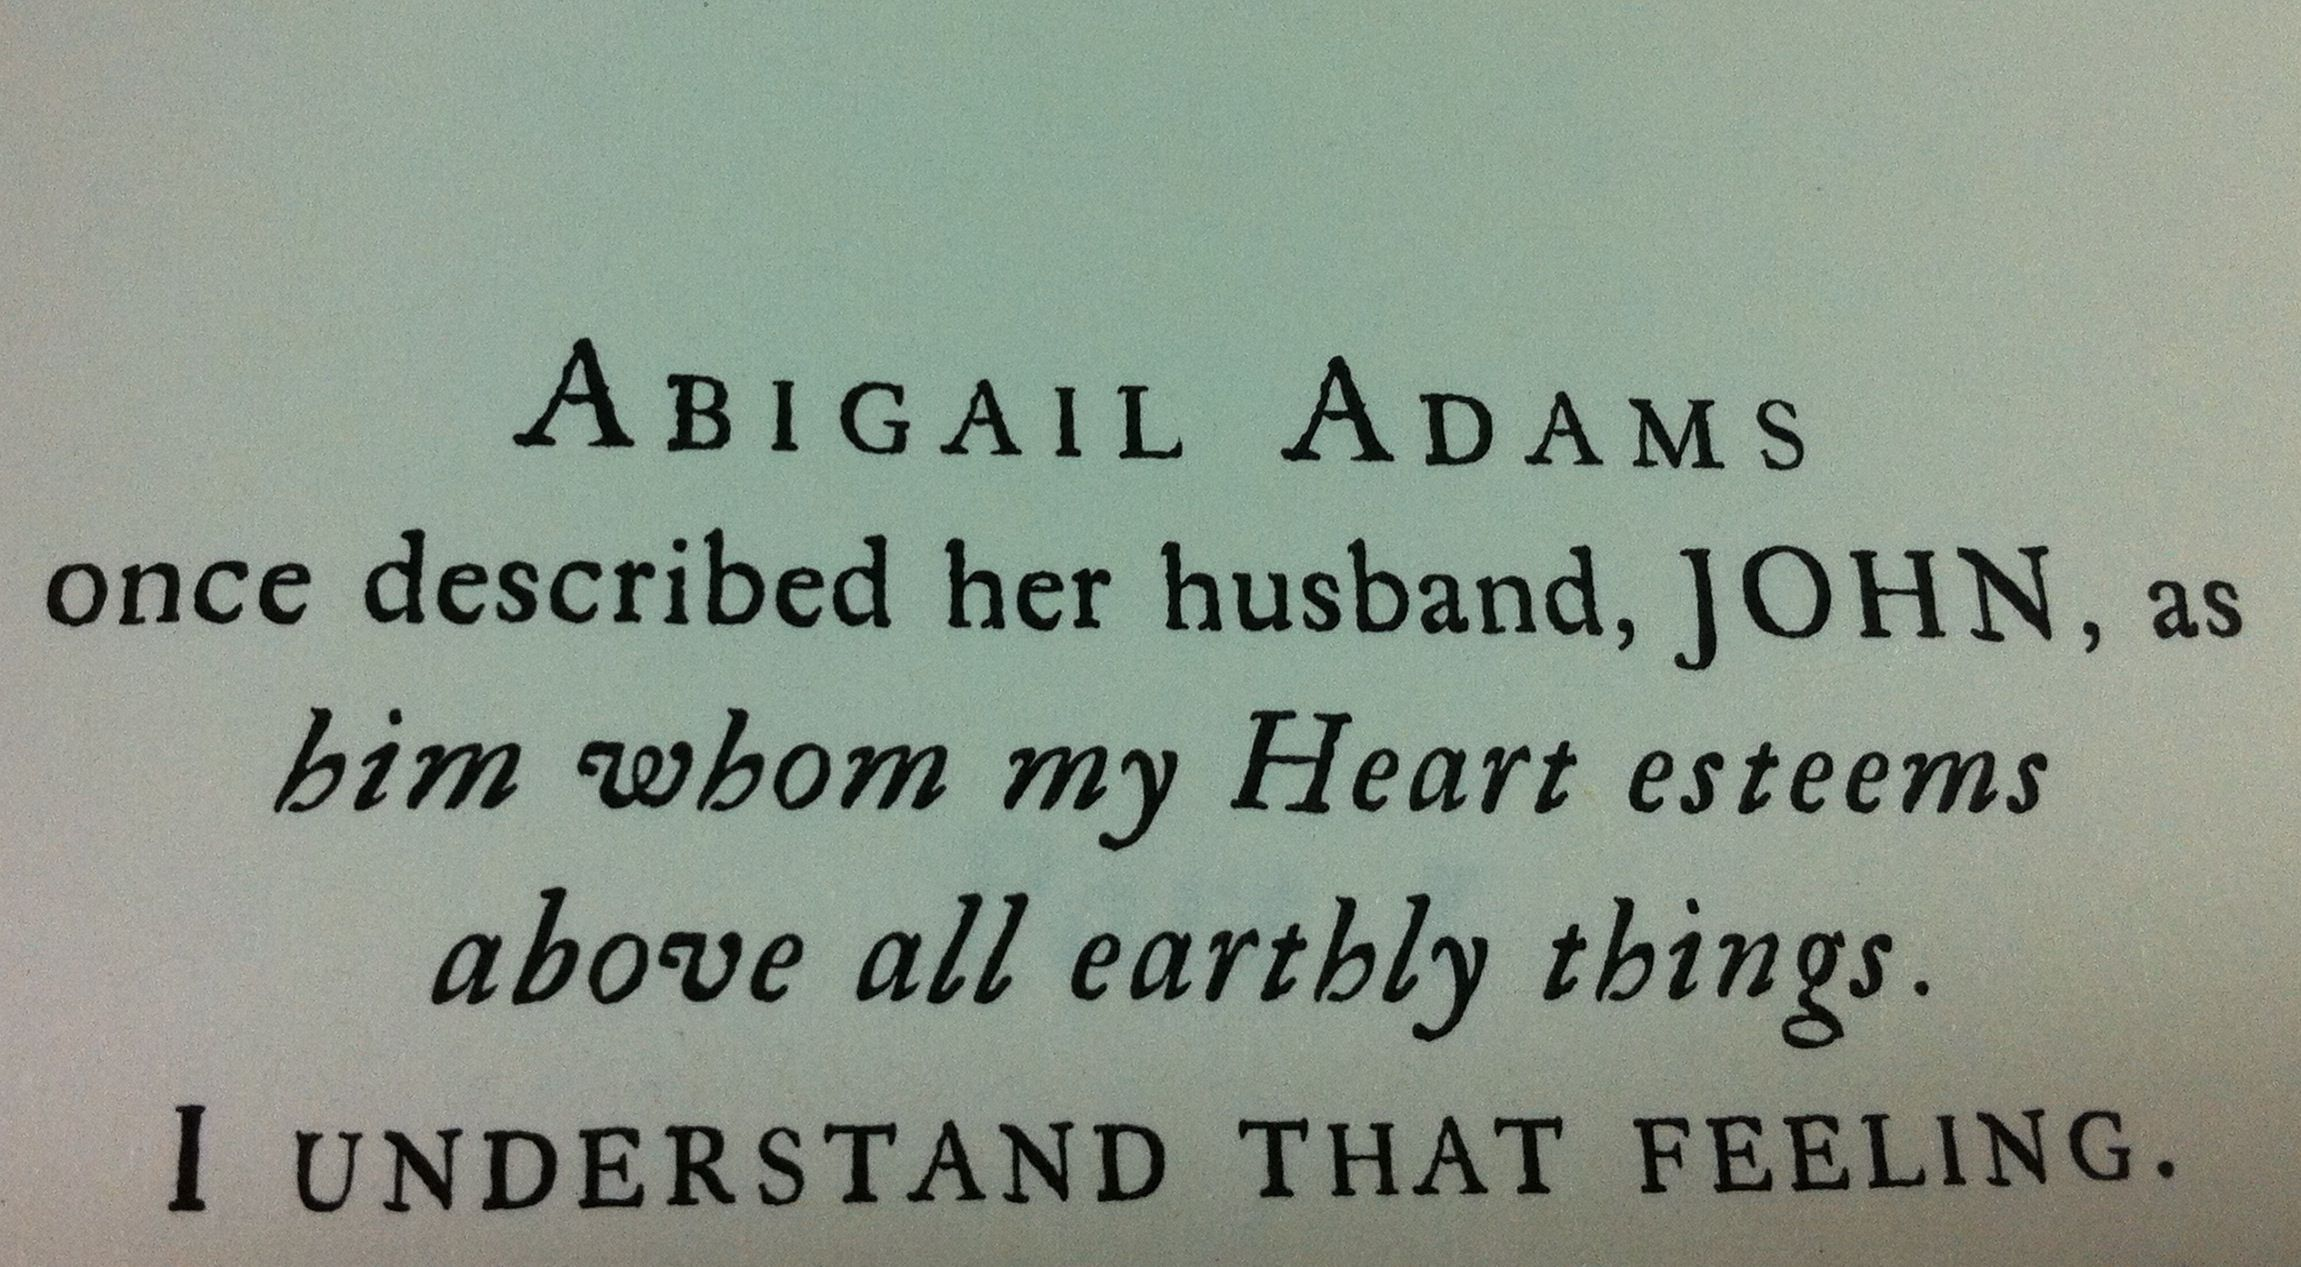 Abigail Adams Quotes Abigail And John Adams Are Known For Their Loving Marriage Based